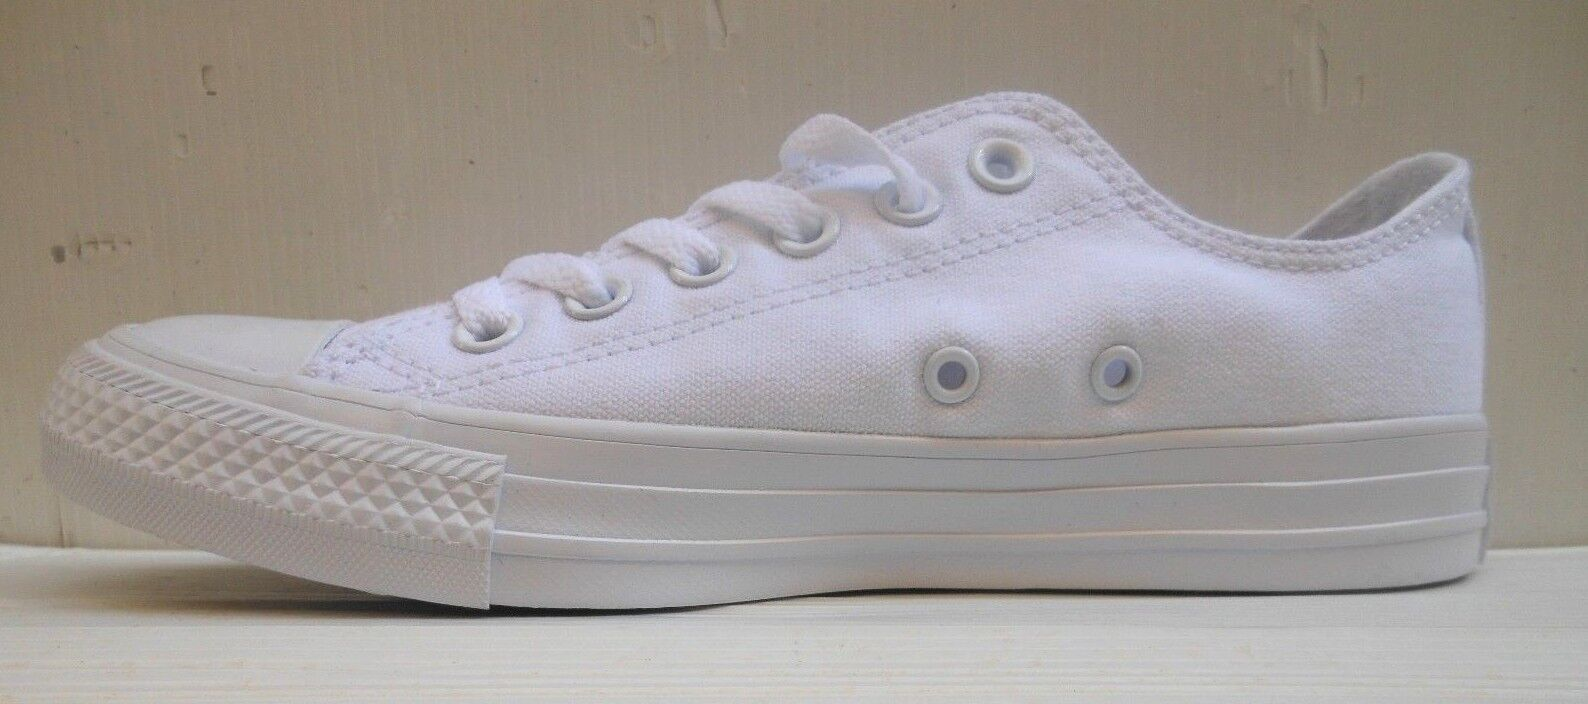 509 CONVERSE SCARPA DONNA CT AS OX CANVAS CORE BIANCA MONOCHROME 1U647